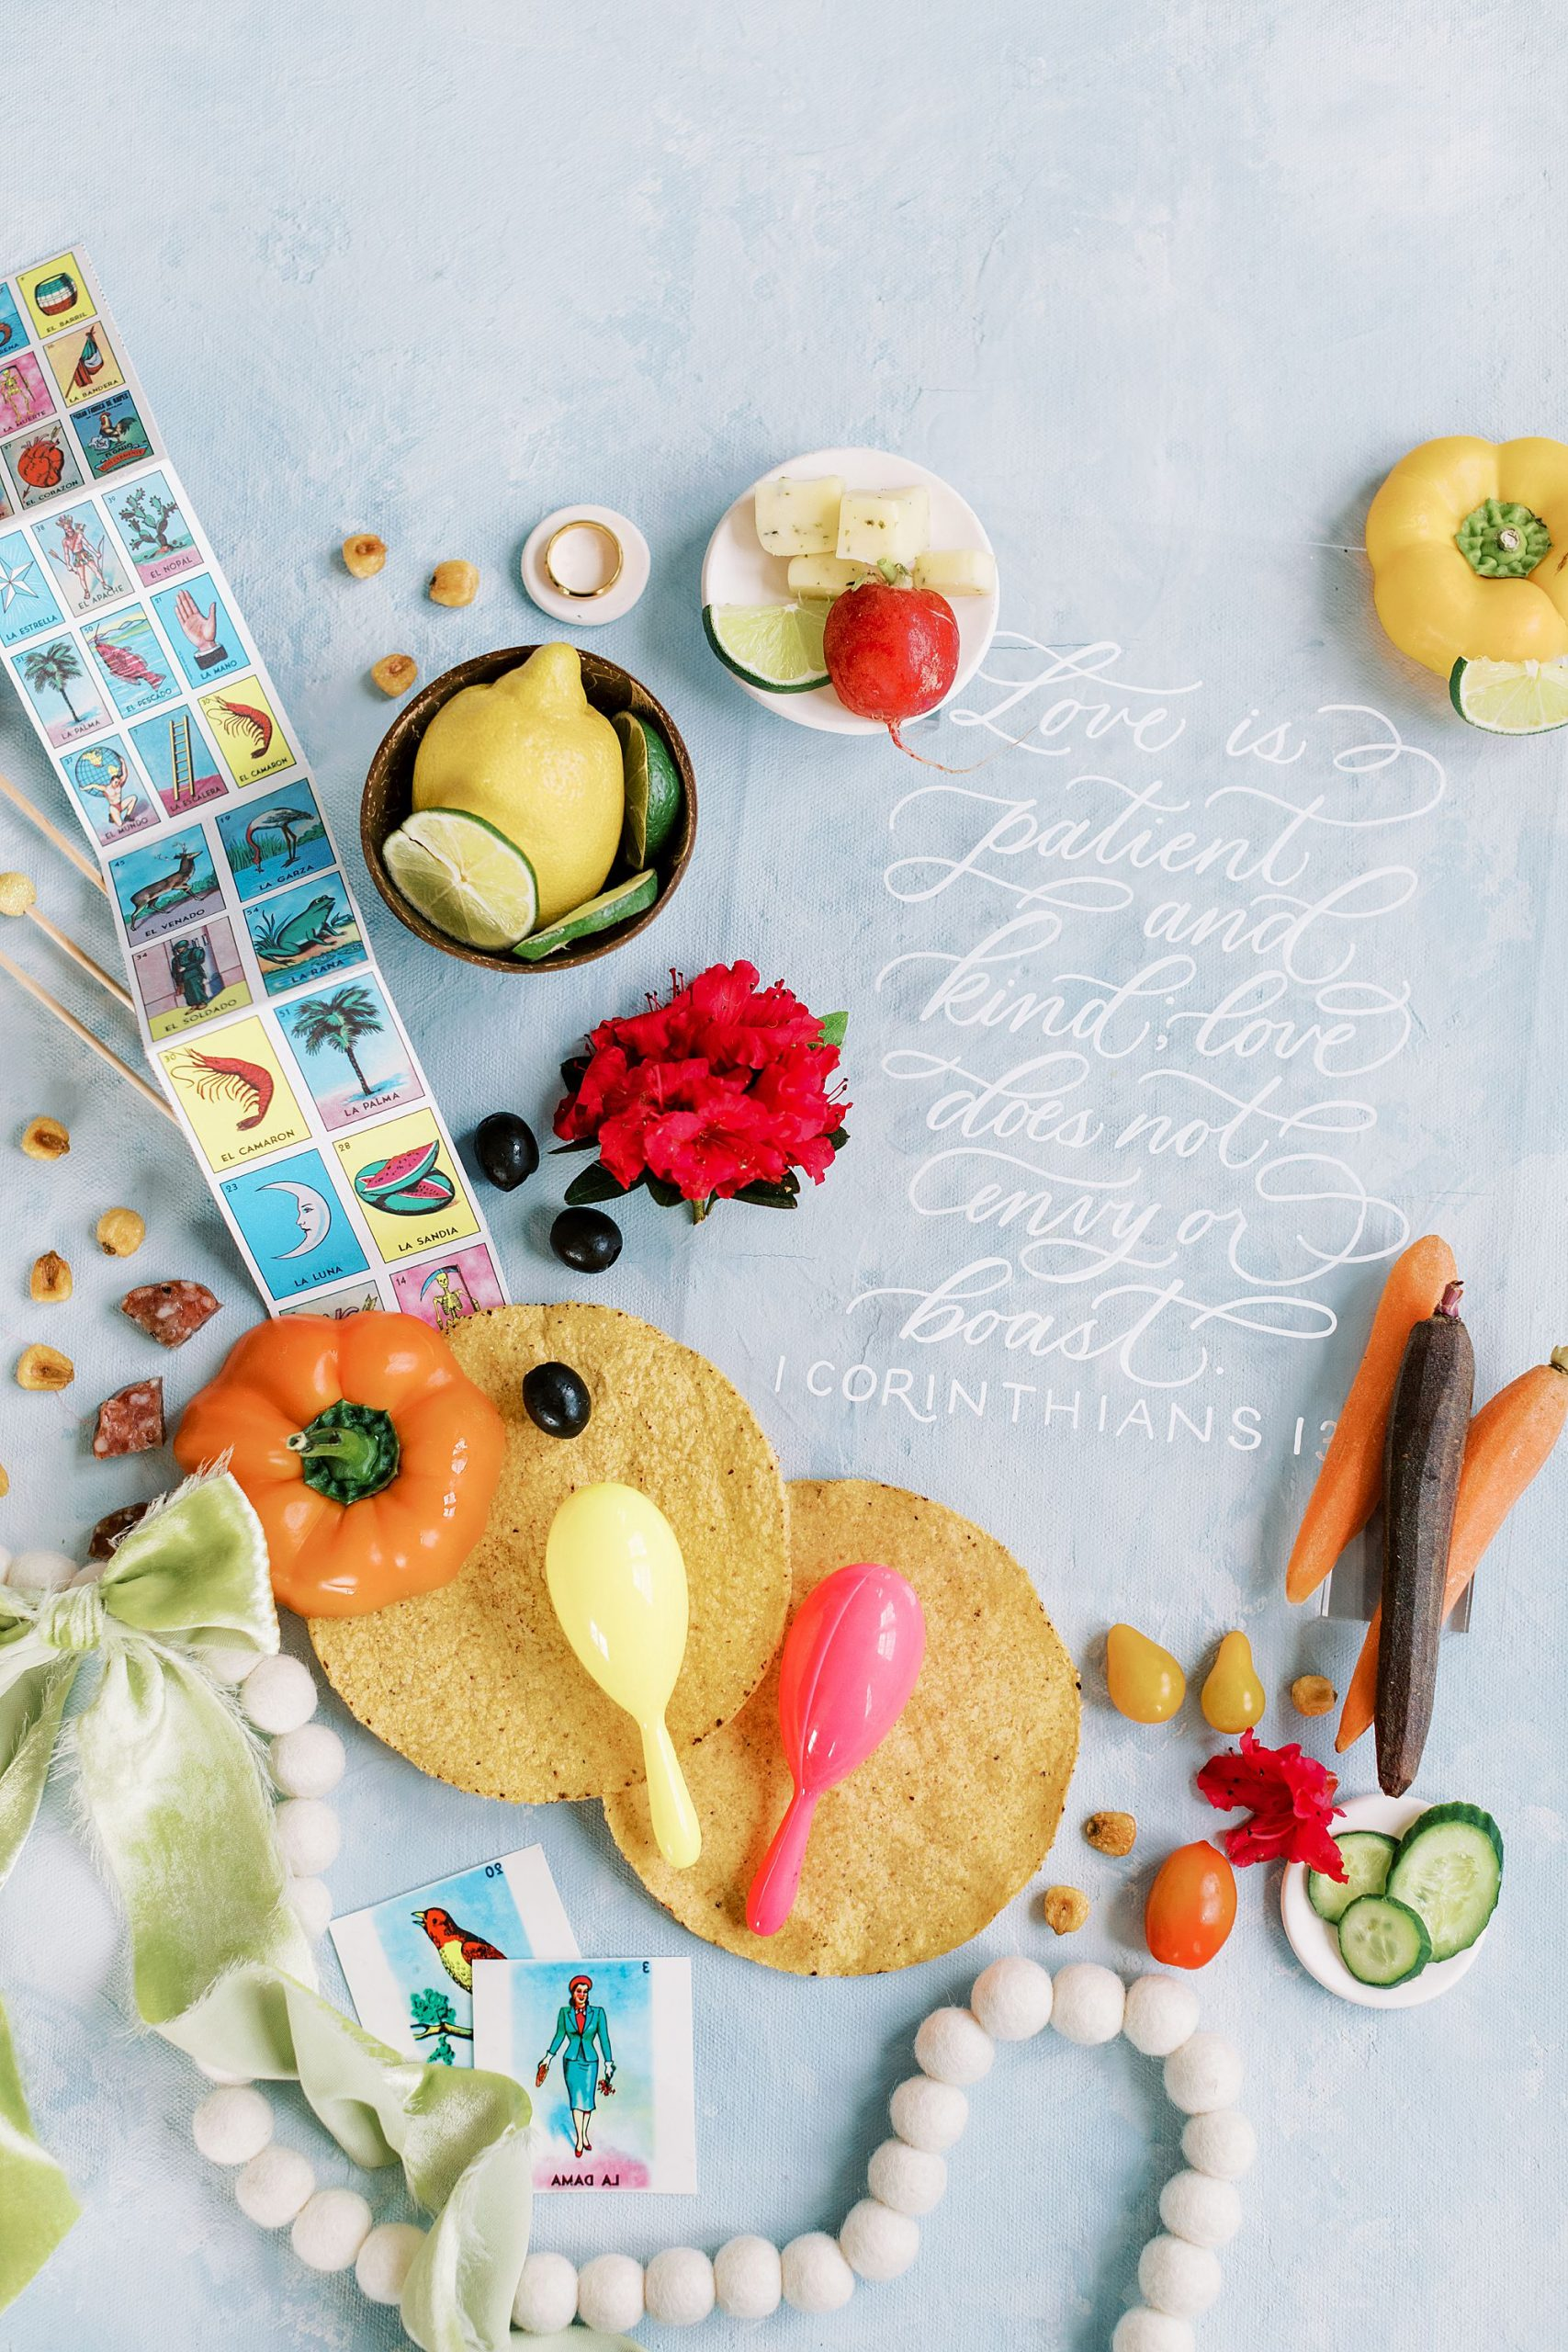 Cinco De Mayo Inspiration for Your FIesta - Party Crush Studio and Ashley Baumgartner_0033.jpg